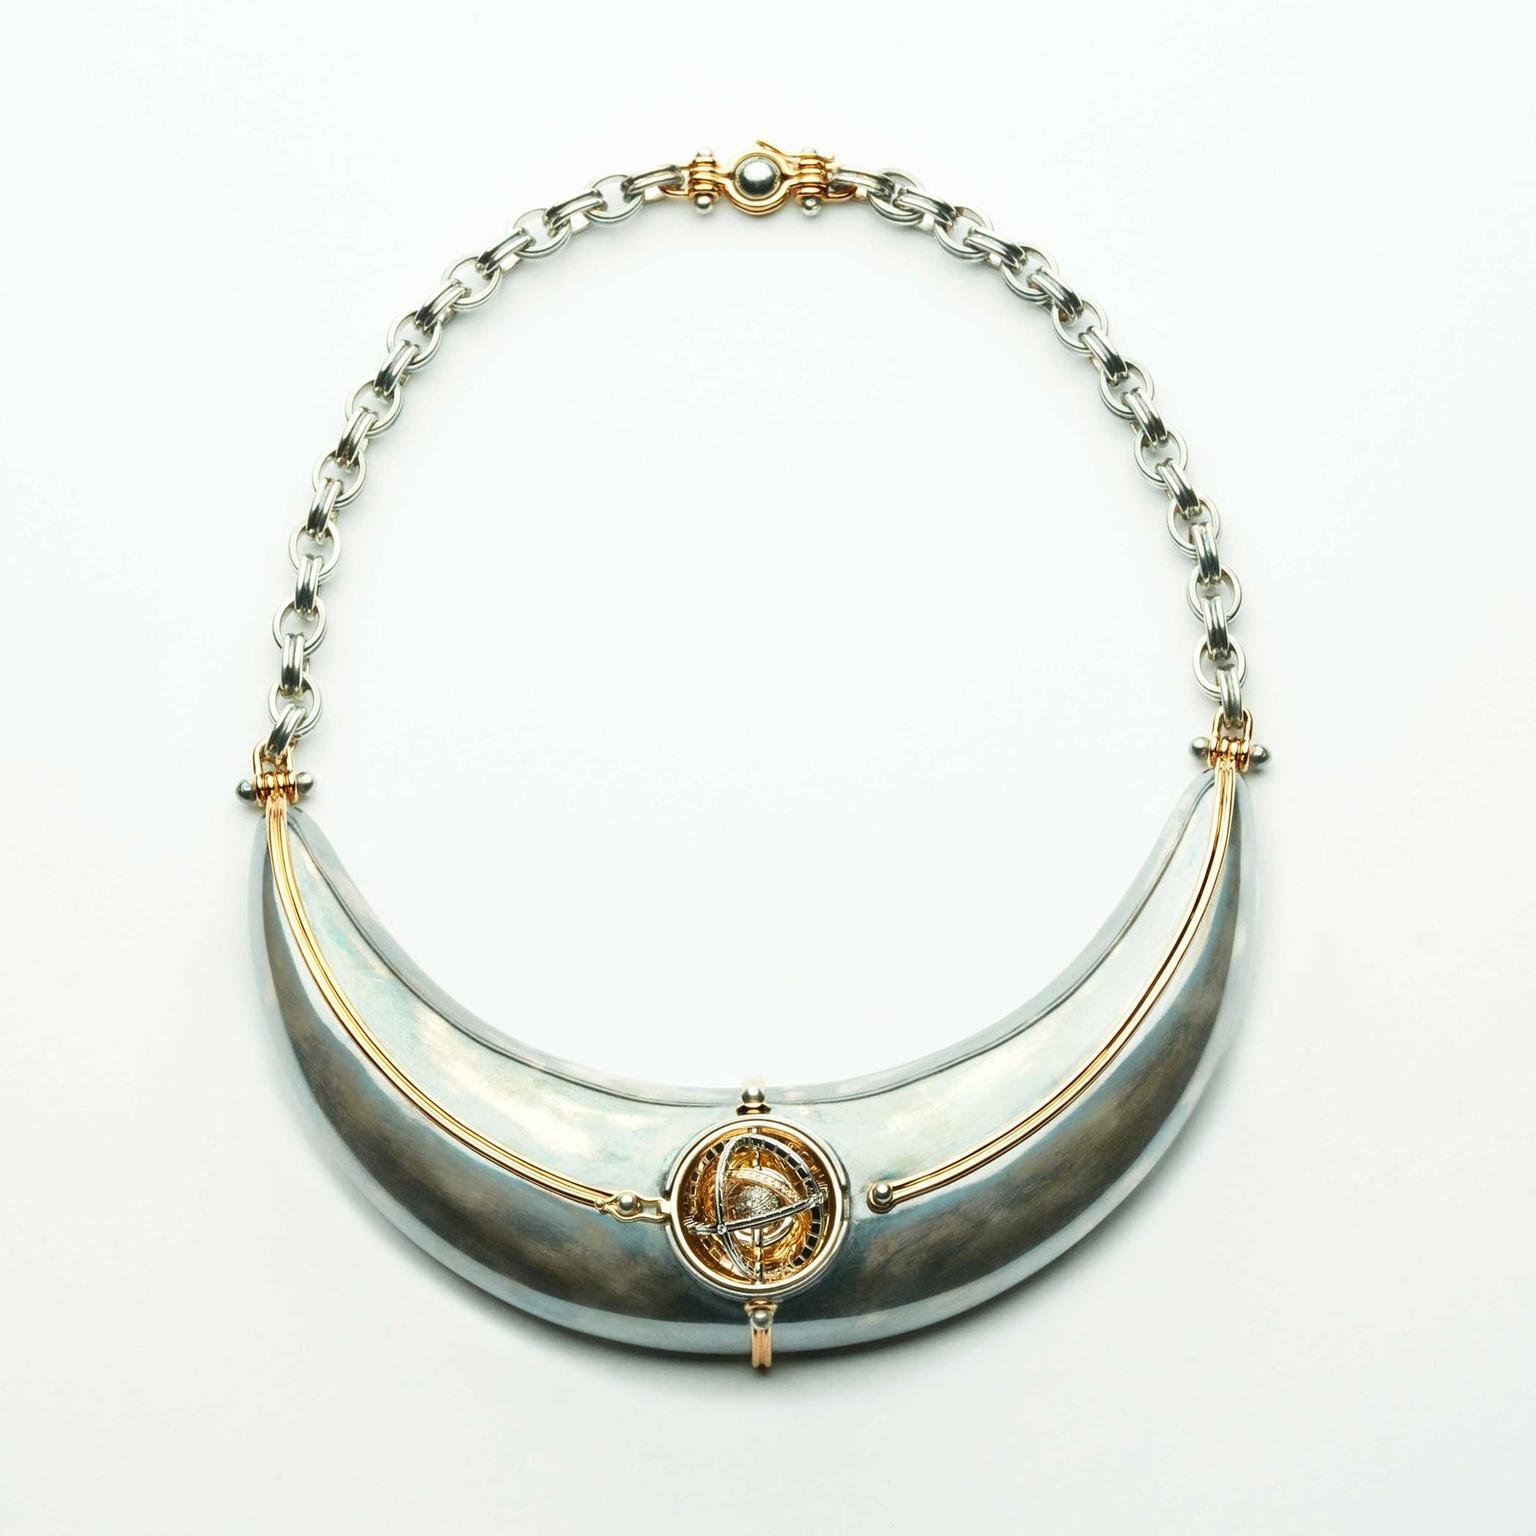 Elie Top Schaphandre torque necklace